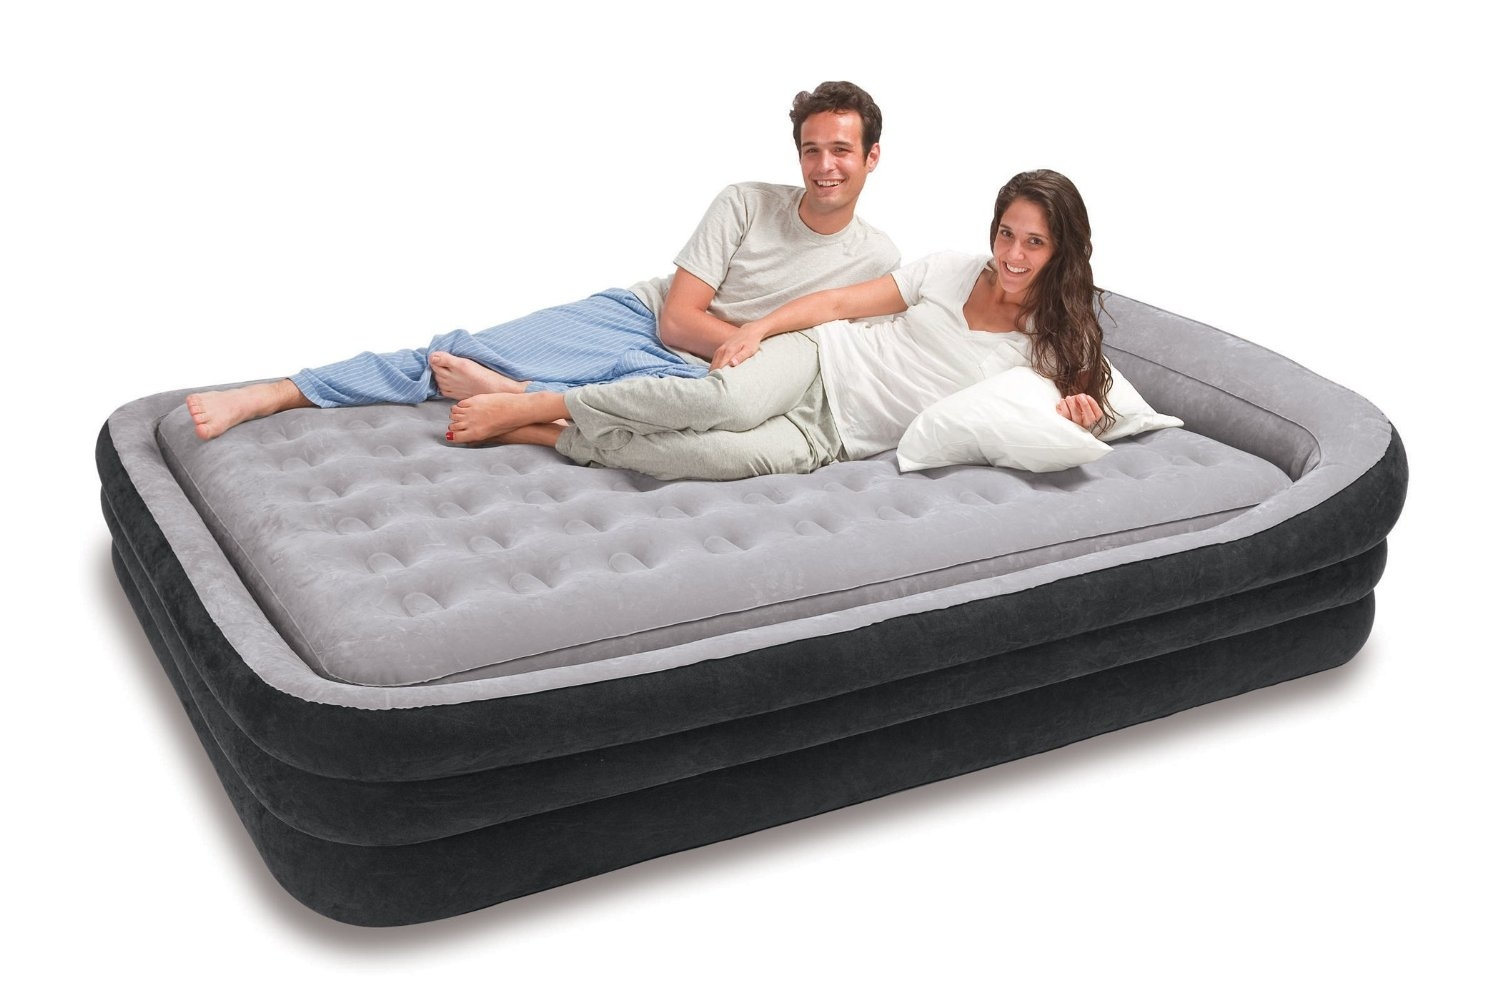 Portable Bed Frames For Air Mattresses